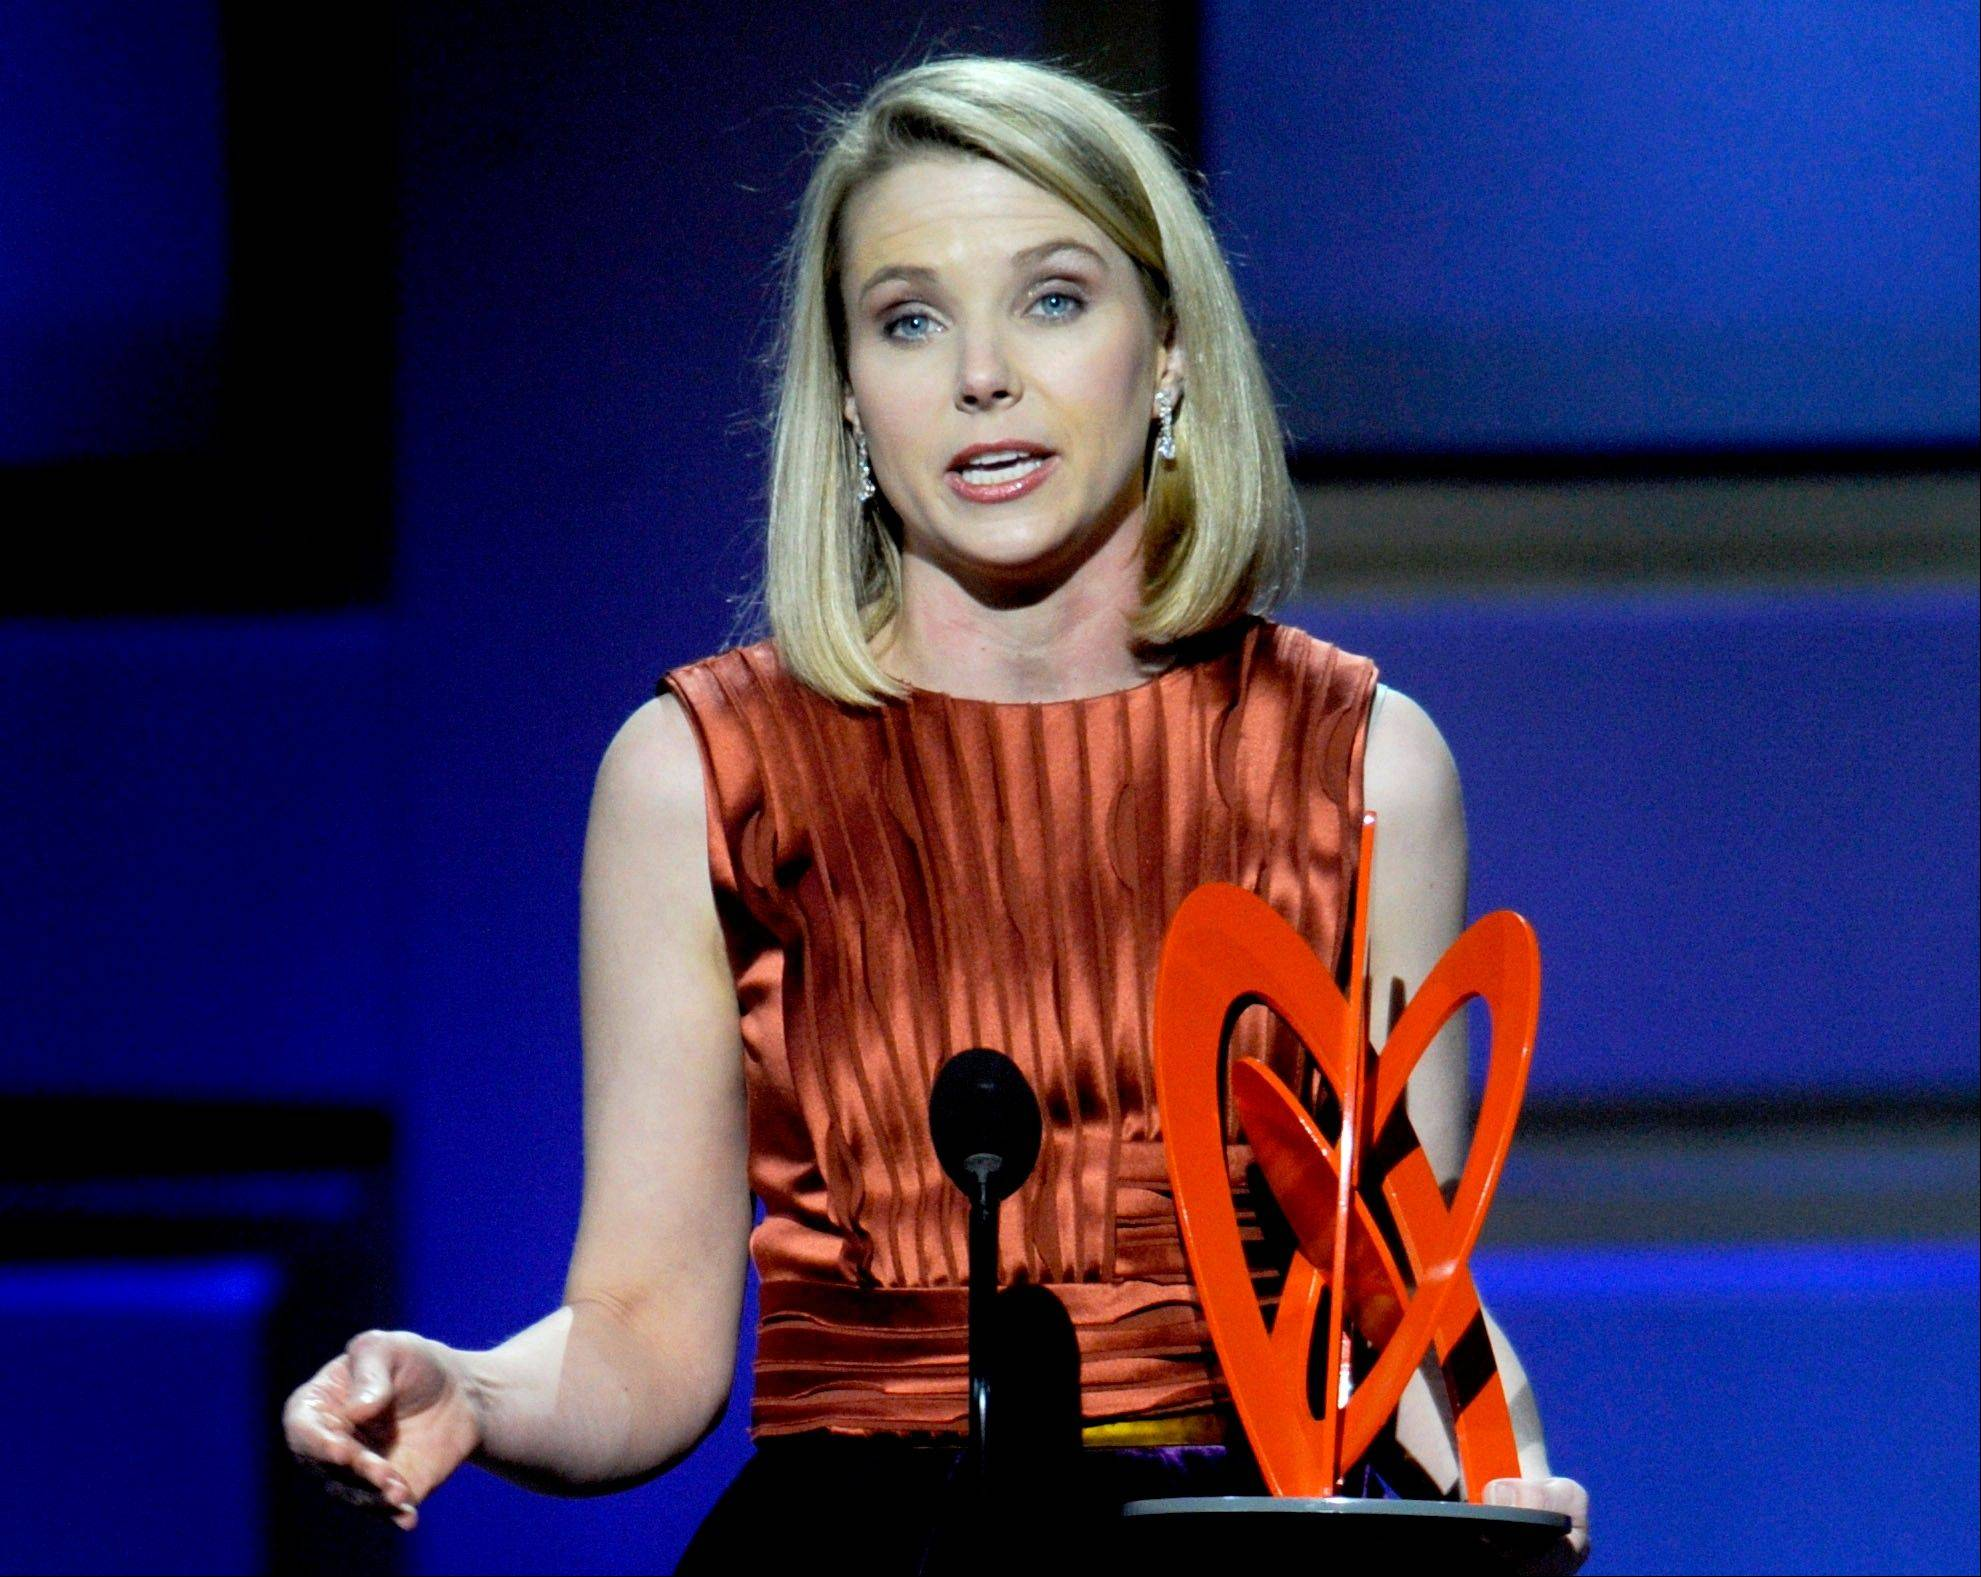 Marissa Mayer, who was named Yahoo Inc.'s CEO on July 16, accepts her award at Glamour magazine's 2009 Women of the Year awards at Carnegie Hall in New York. Yahoo is giving Mayer a compensation package worth more than $59 million over the next several years.